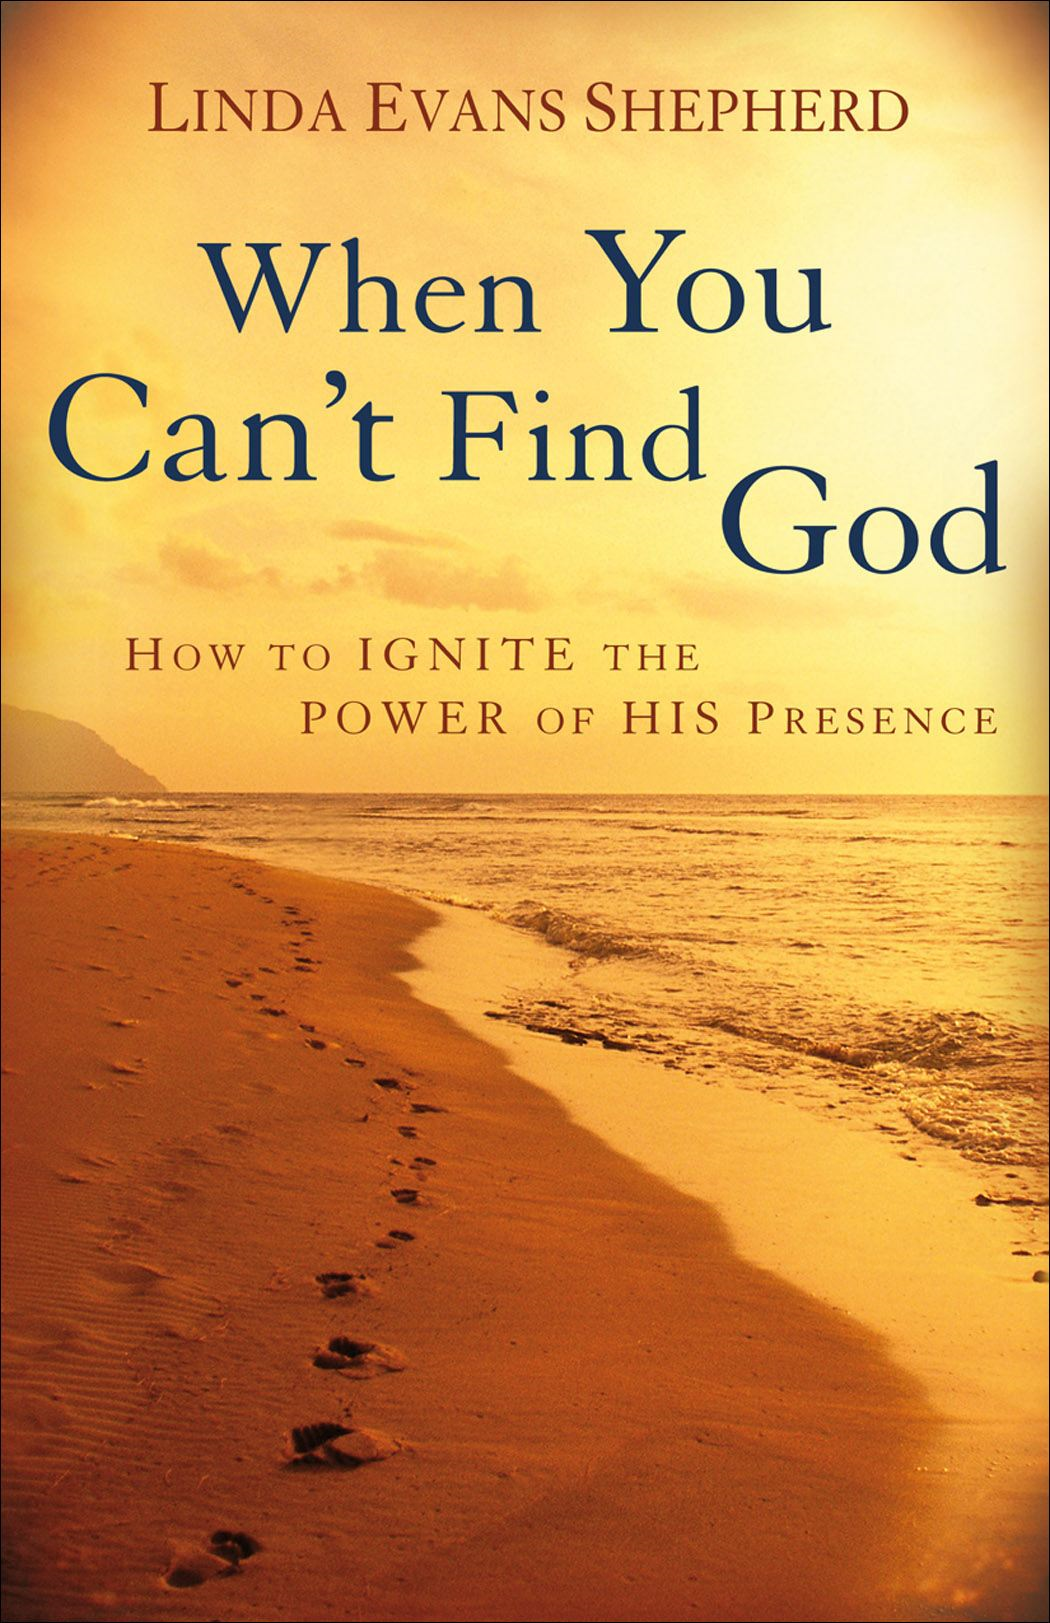 When You Can't Find God By: Linda Evans Shepherd